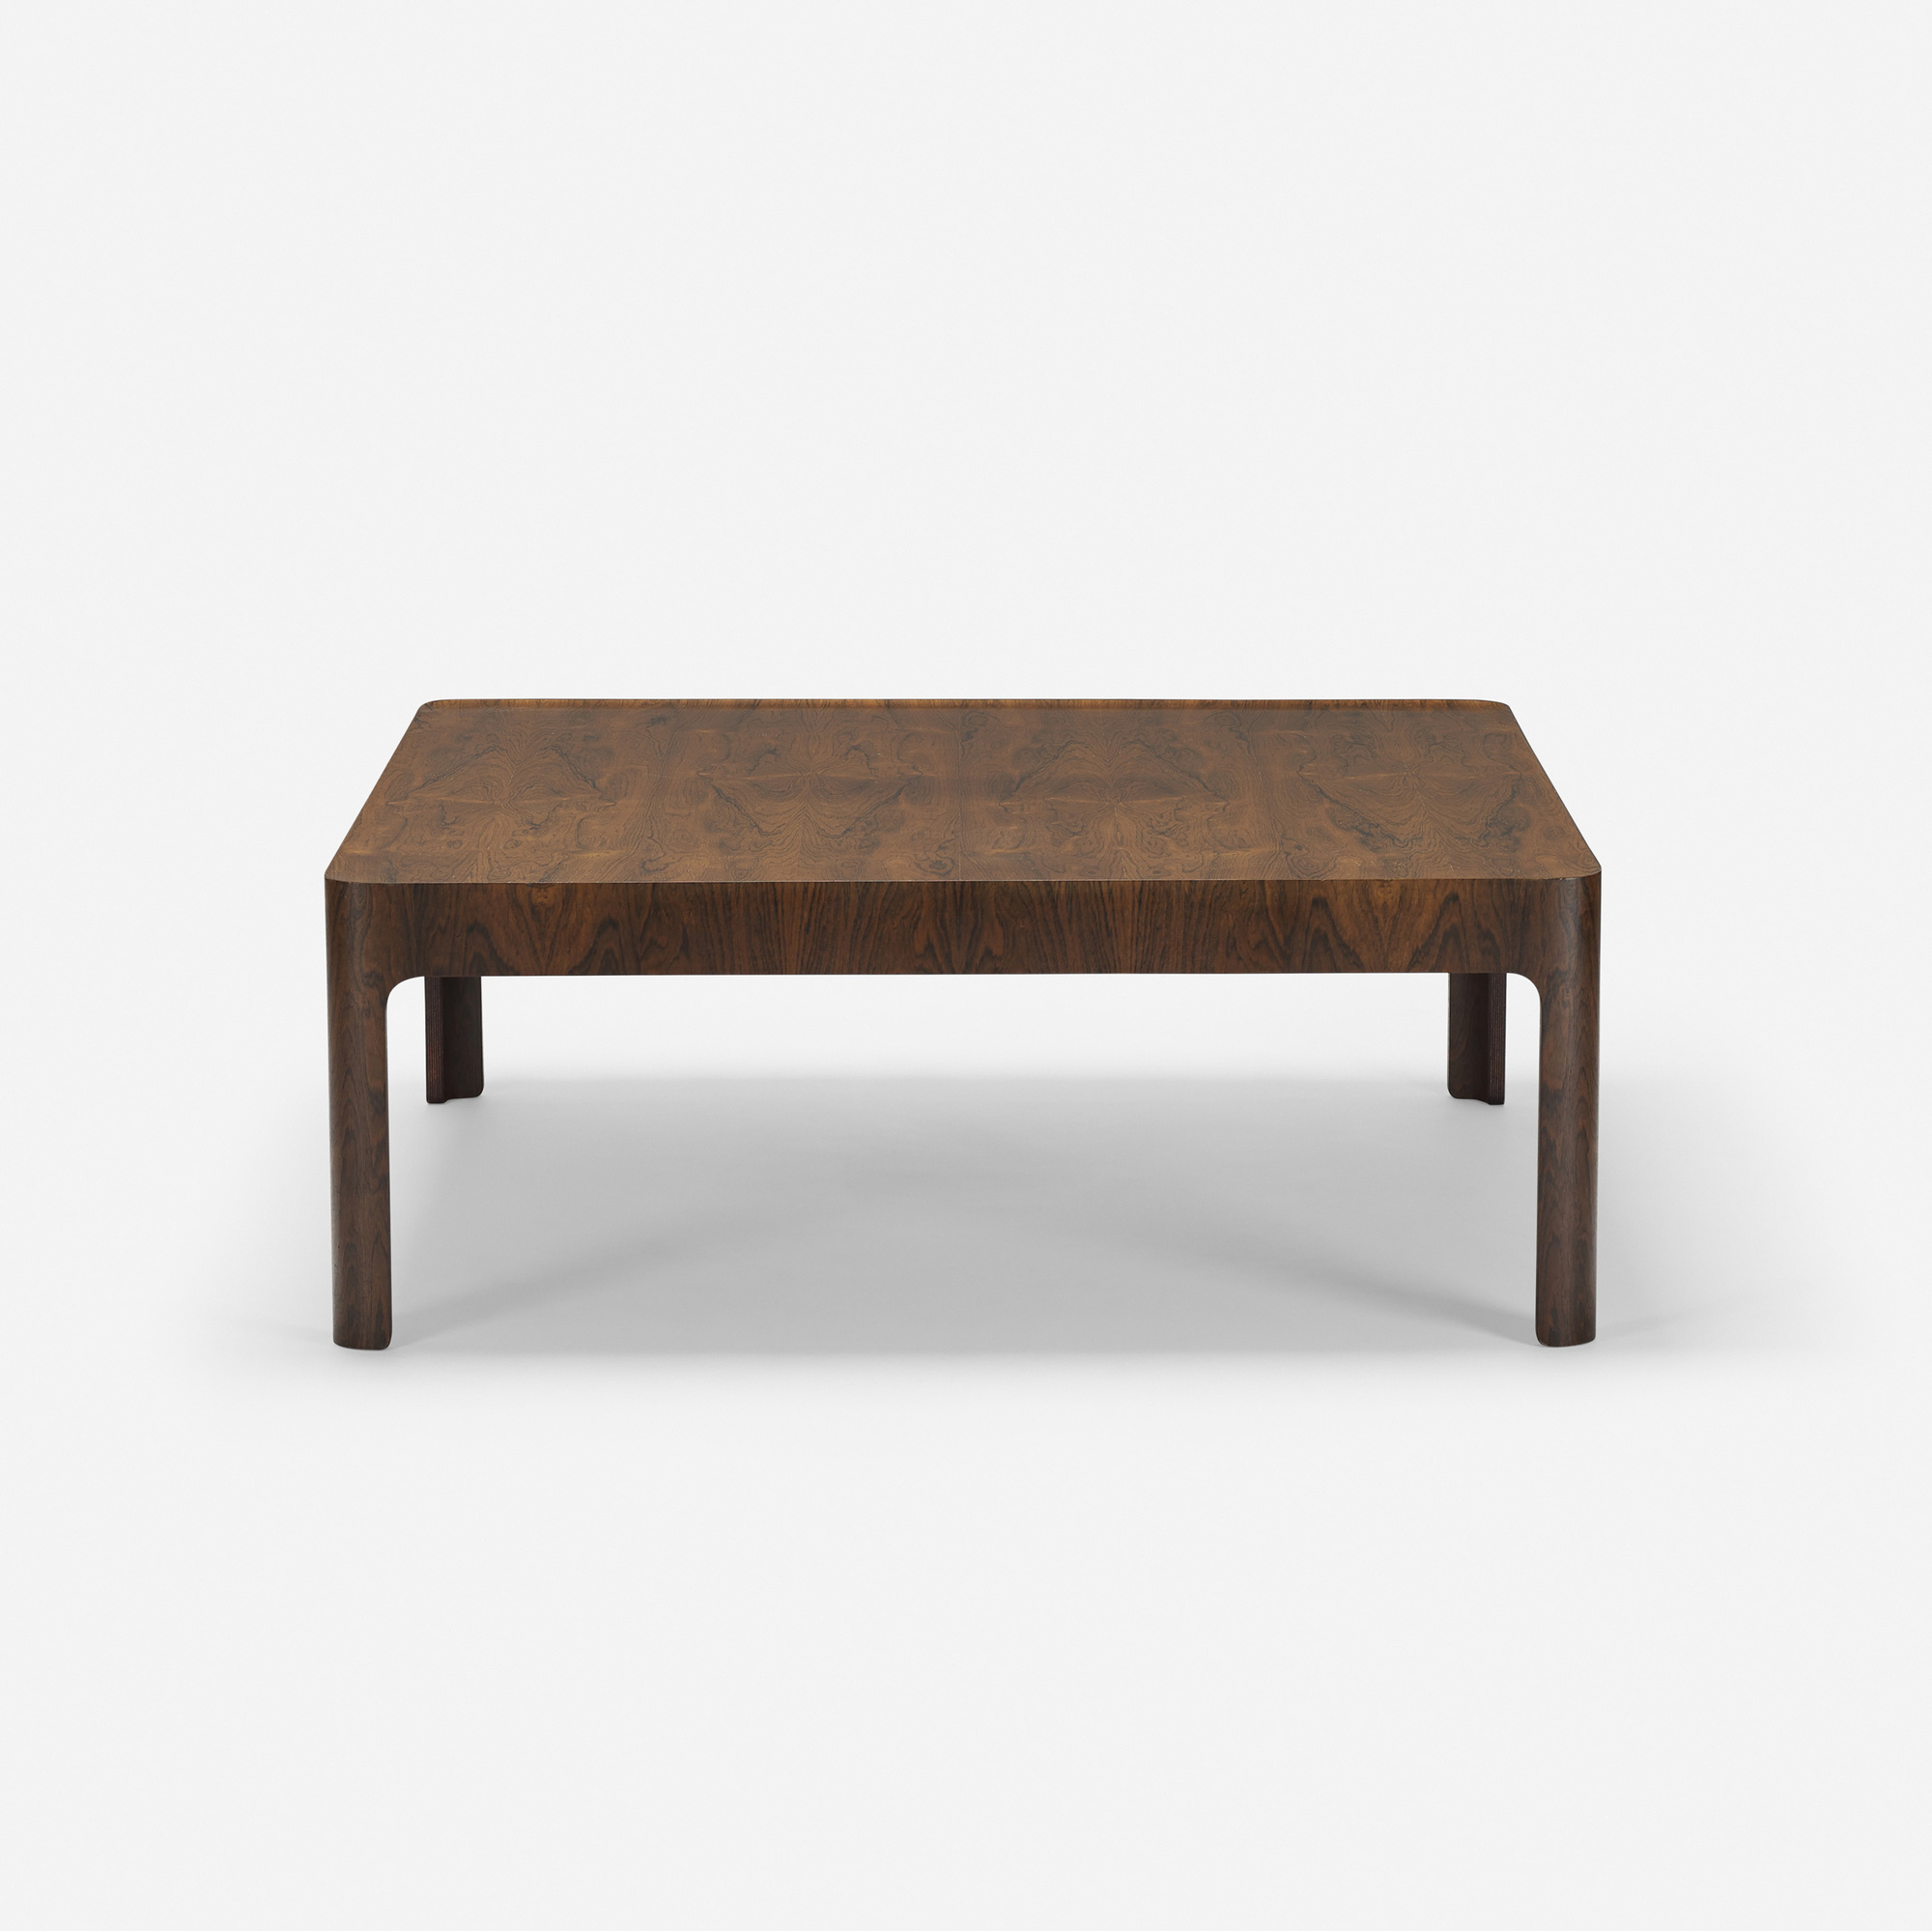 295 Isamu Kenmochi Coffee Table